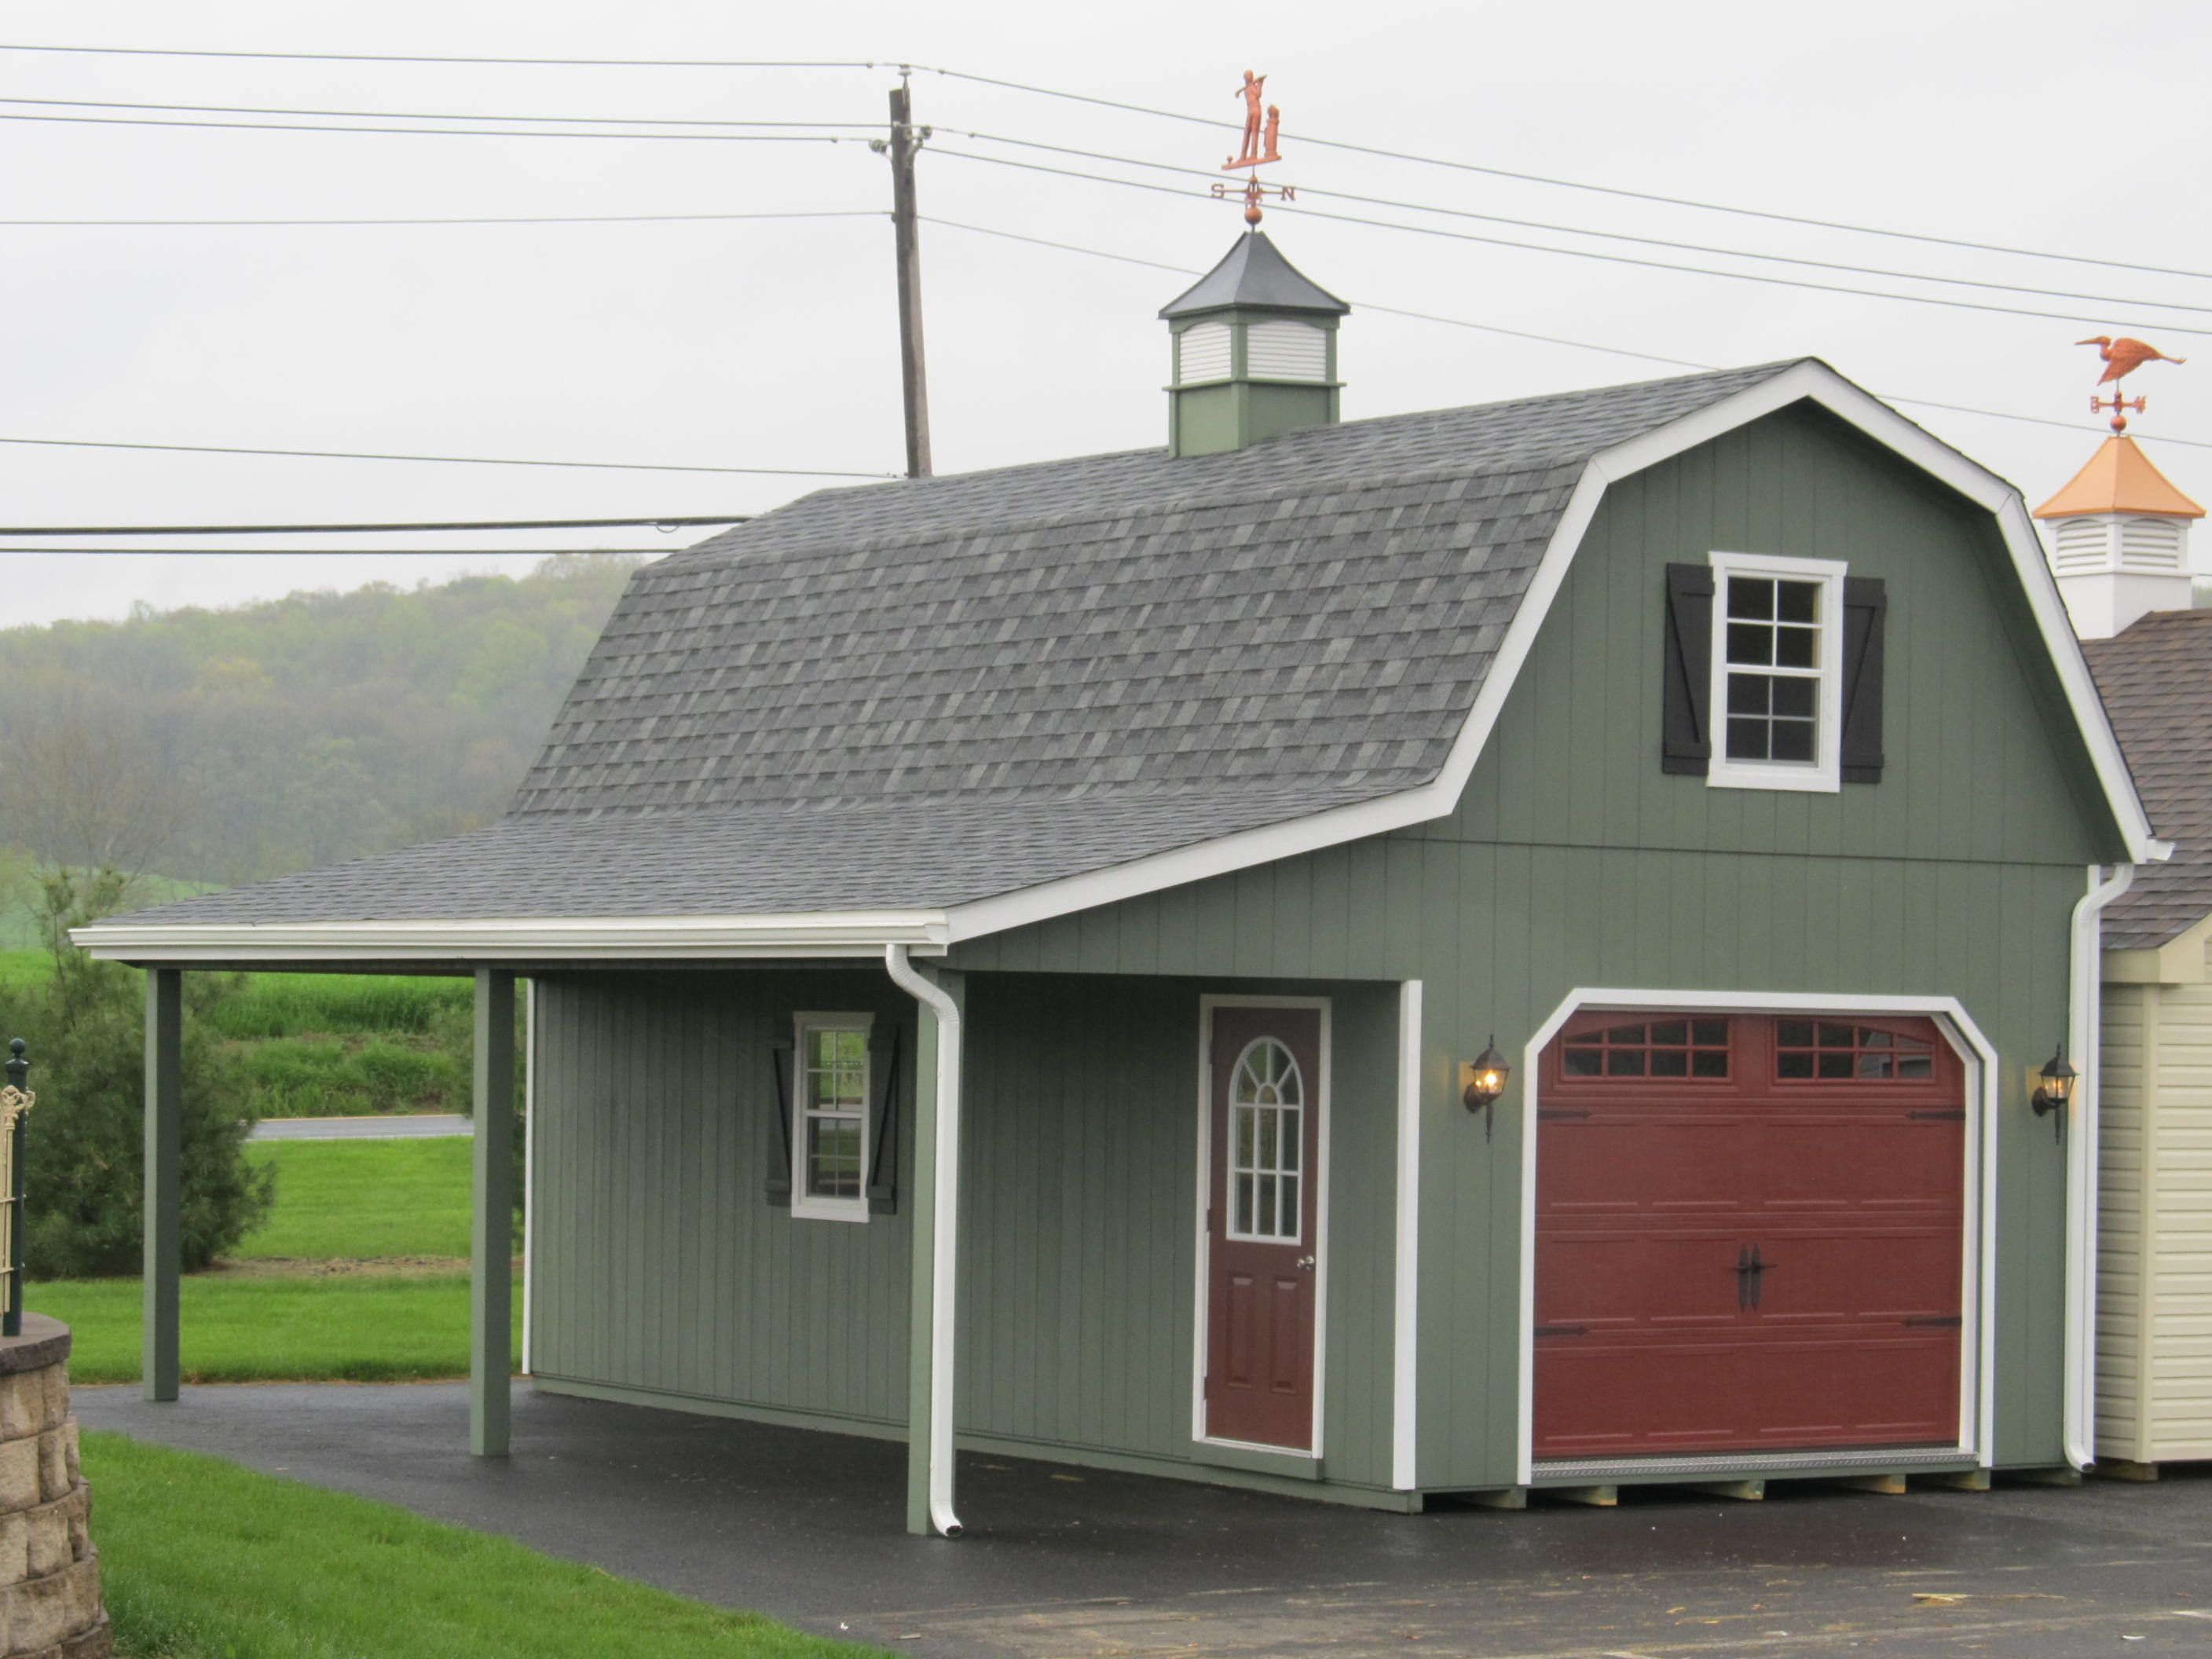 the at garden sheds workshops a price with nj amish two are shedbuzz pa you outdoor reasonable ny uk storage providing project and story md designer plans quality highest we wood to legacy committed